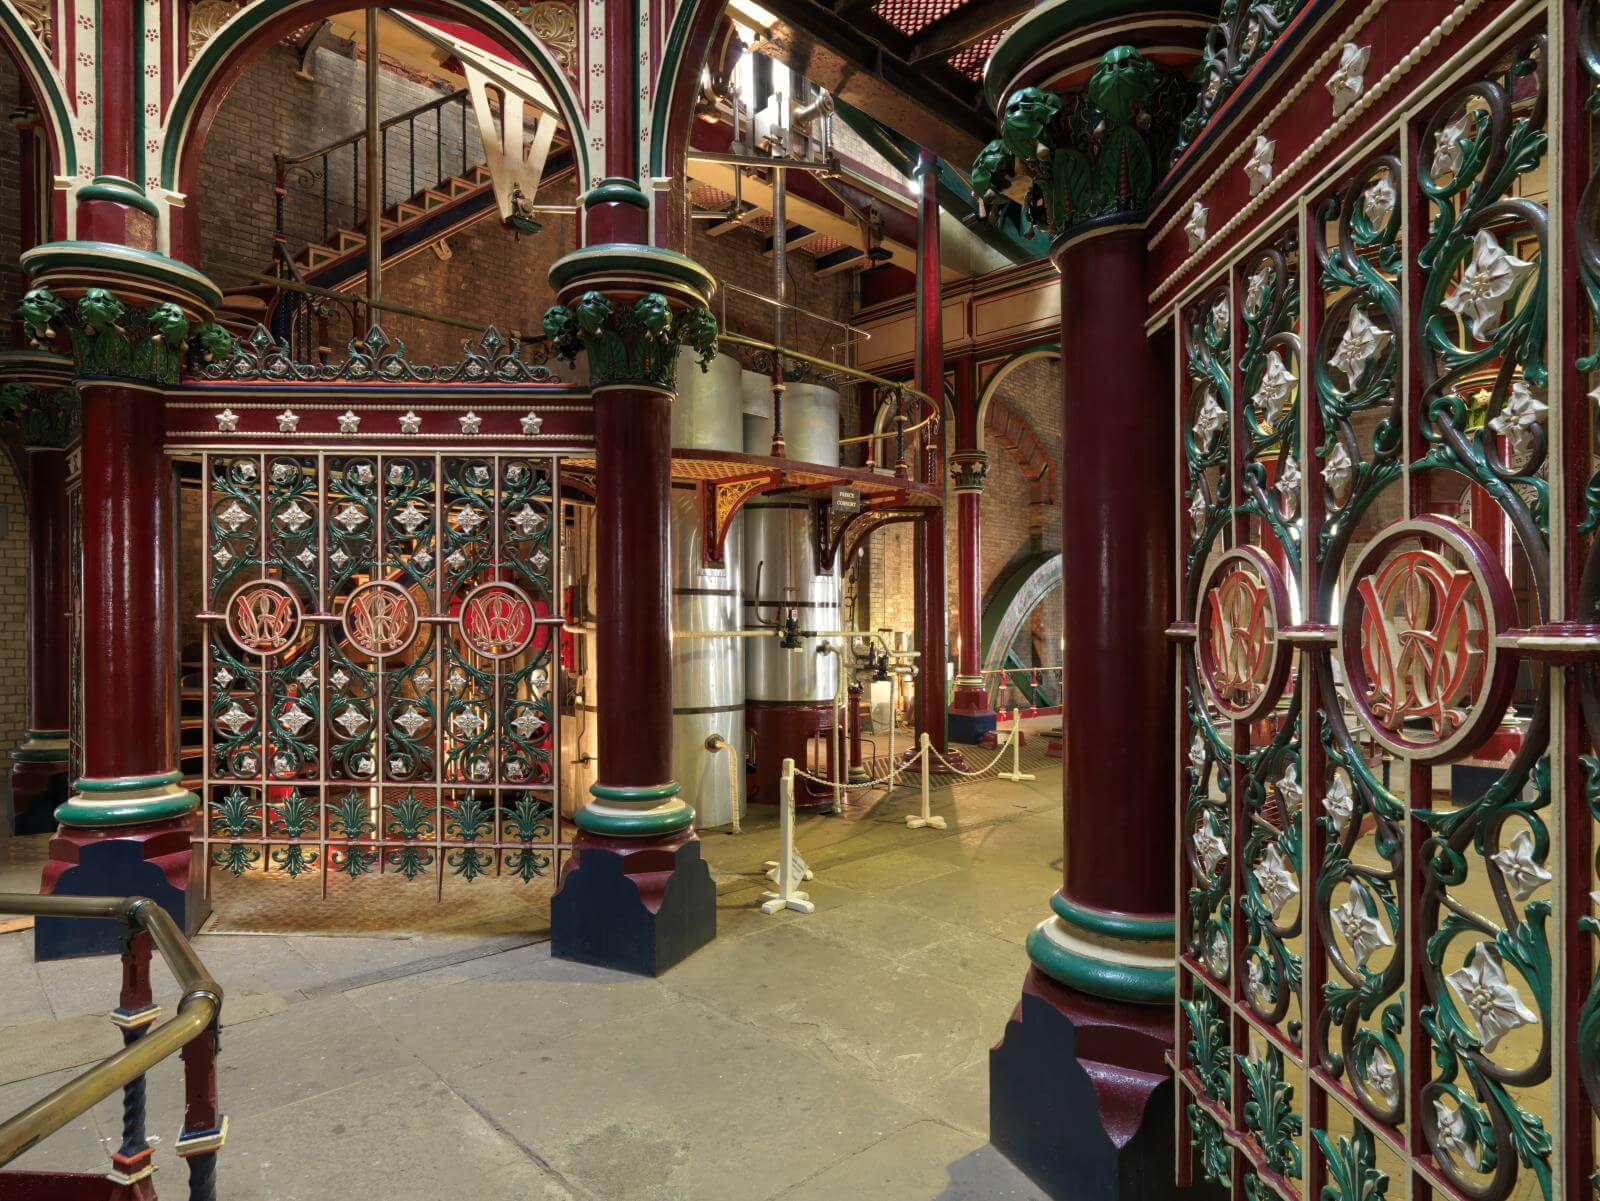 View of decorative ironwork inside Crossness Pumping Station